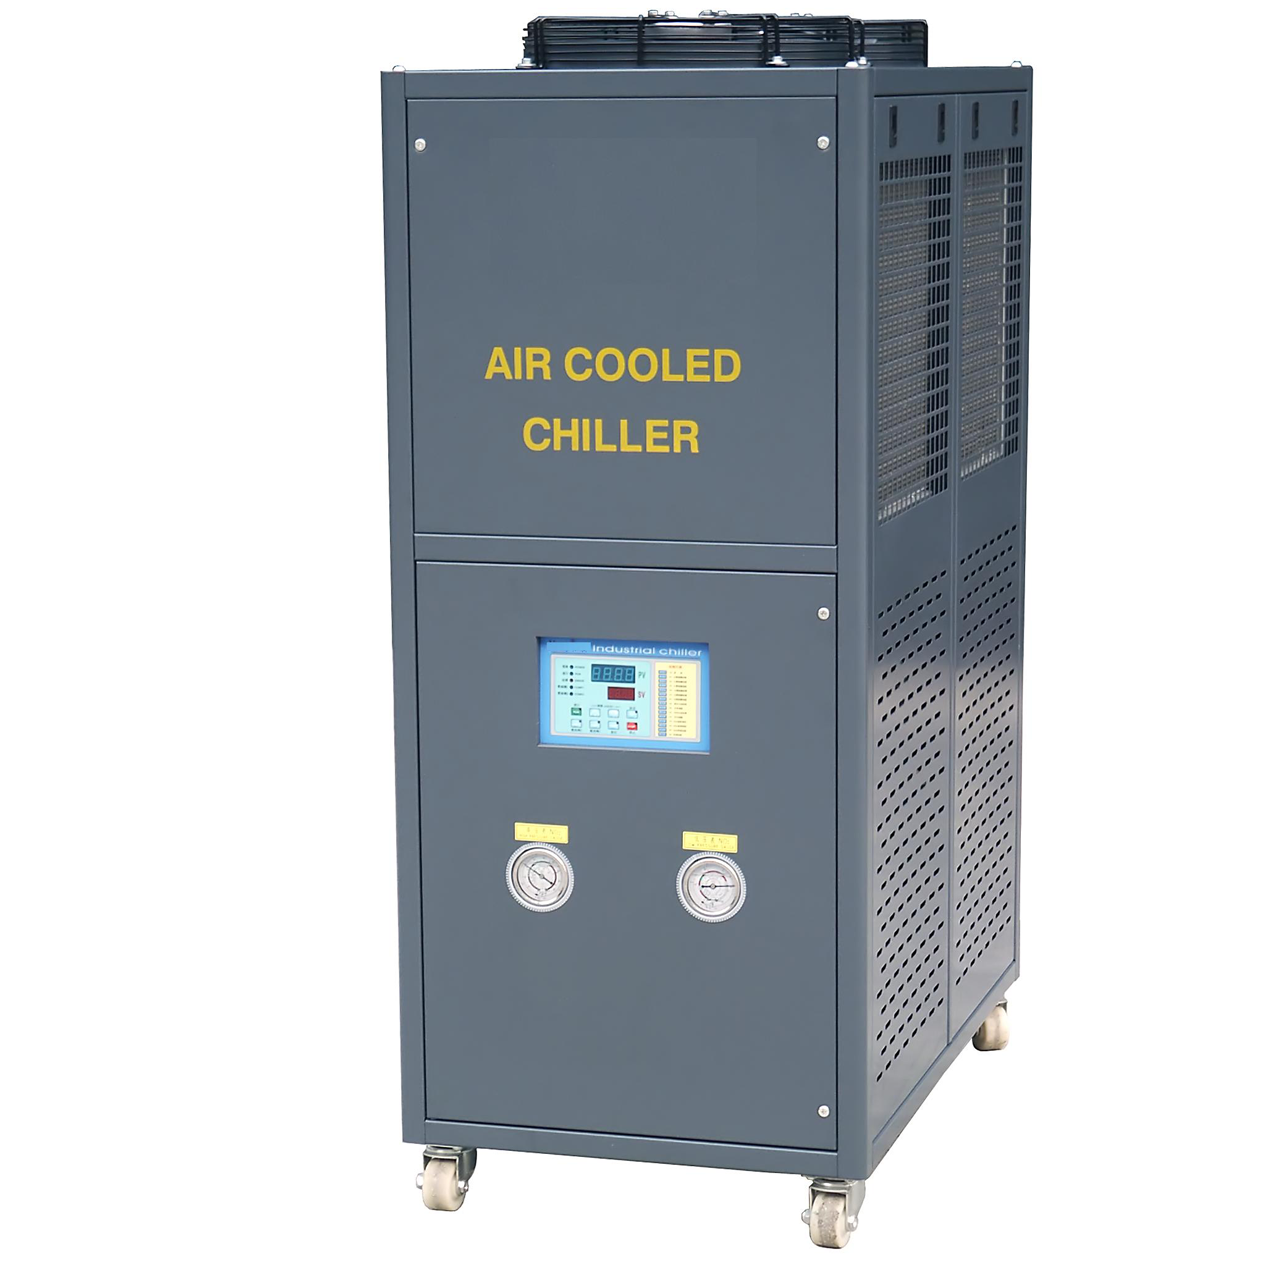 Air Cooled Chiller (02)